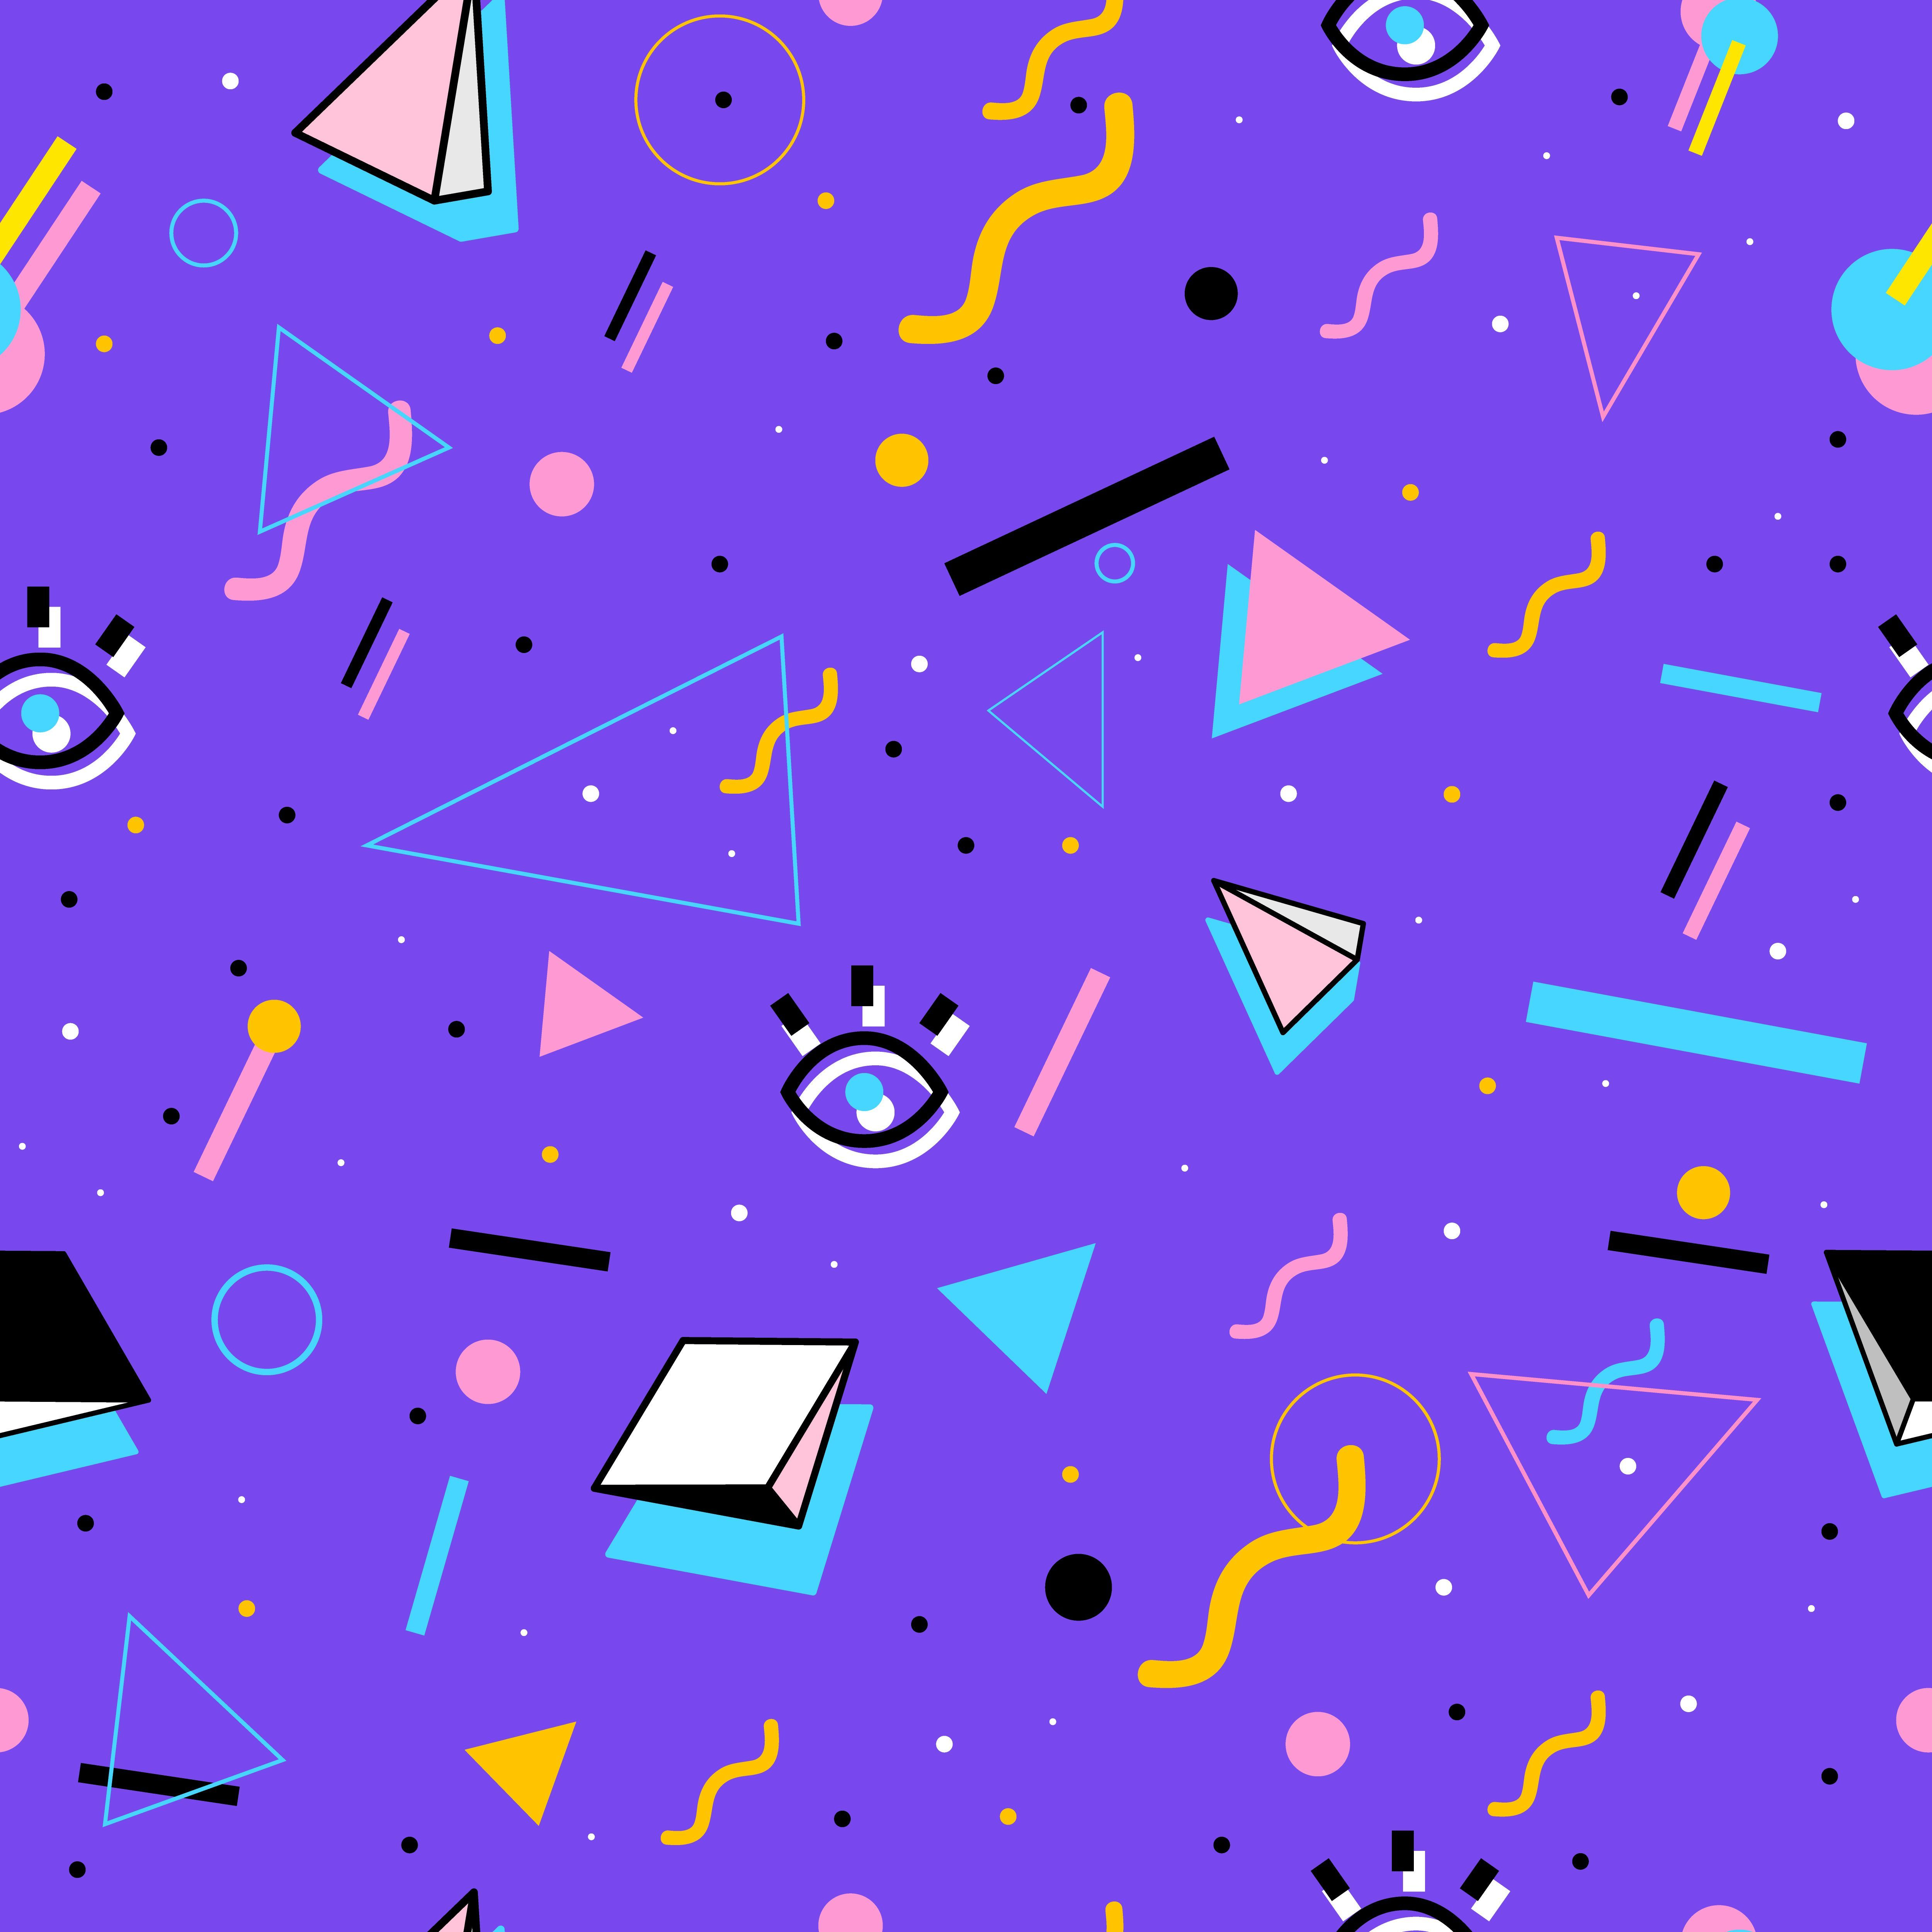 5000x5000 80's style pattern | graphic design | Pinterest | 80 s, Patterns and ...